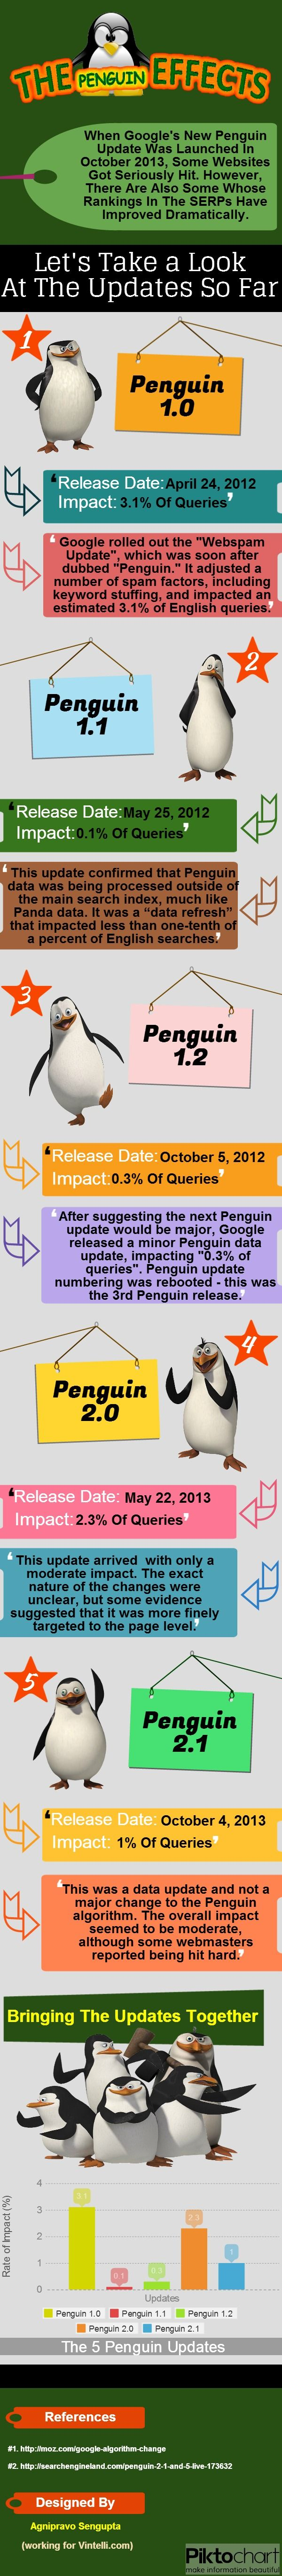 "Google Penguin: Its Impact Over Time [Infographic] image Google Penguin Updates Timeline - See the timeline of Google's Penguin Updates and the percentage of the Web it affected (not that much). If you were using ""Black Hat"" SEO (i.e. questionable linking tactics), chances are that you got hit in the SERPs.  Use ""White Hat"" SEO, and chances are that you can gain back your positions over time."